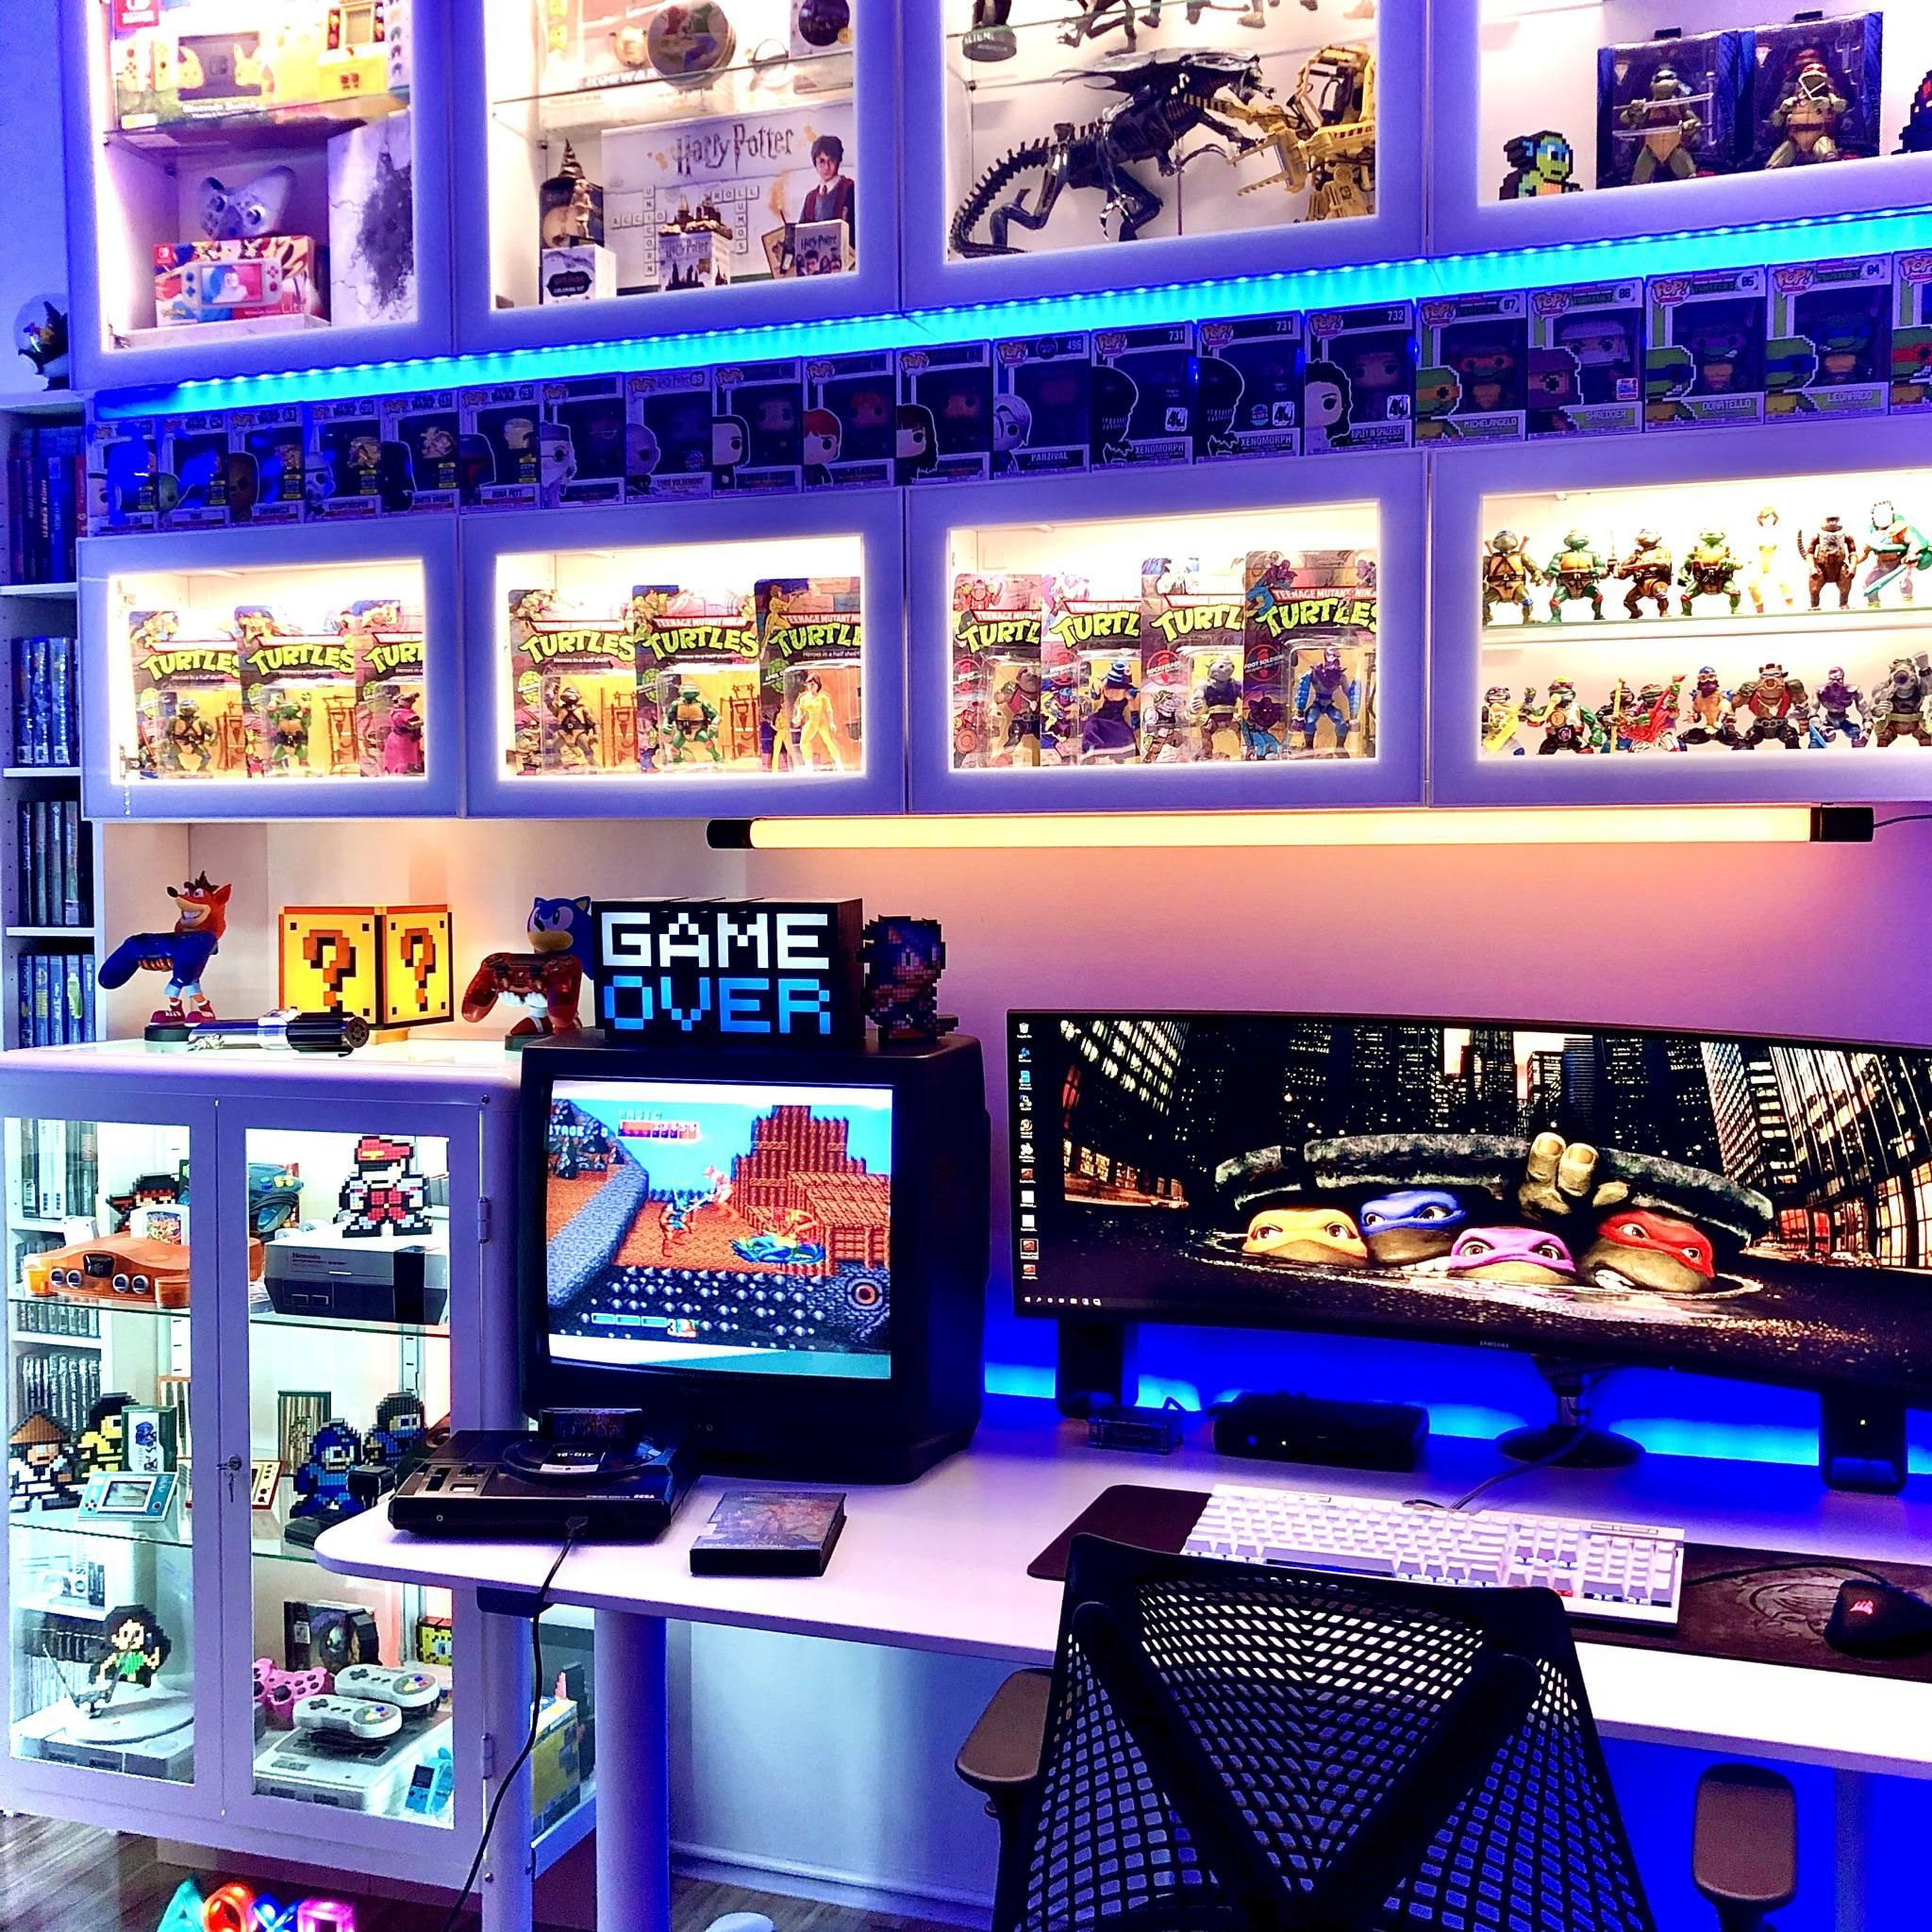 Gaming & Toys Battlestation in 2020 Video game rooms